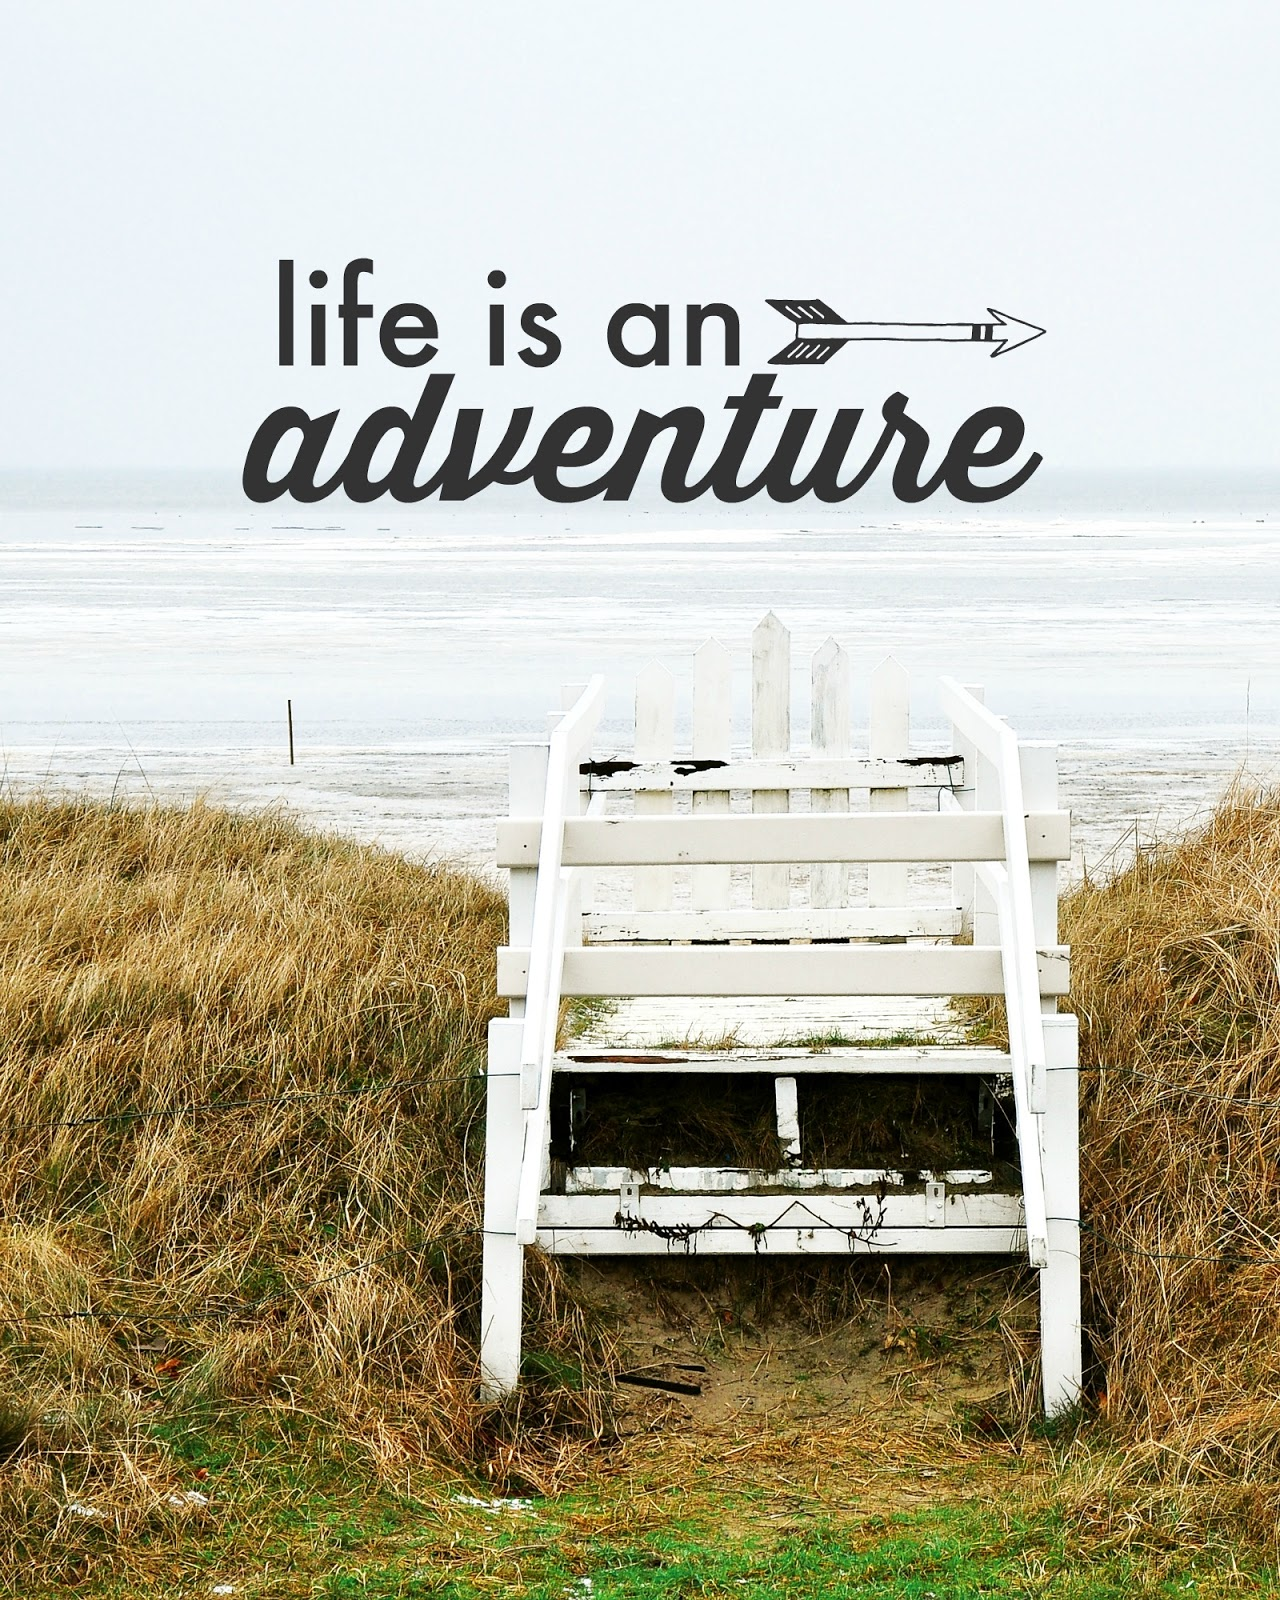 life is an adventure // word art print made in picmonkey